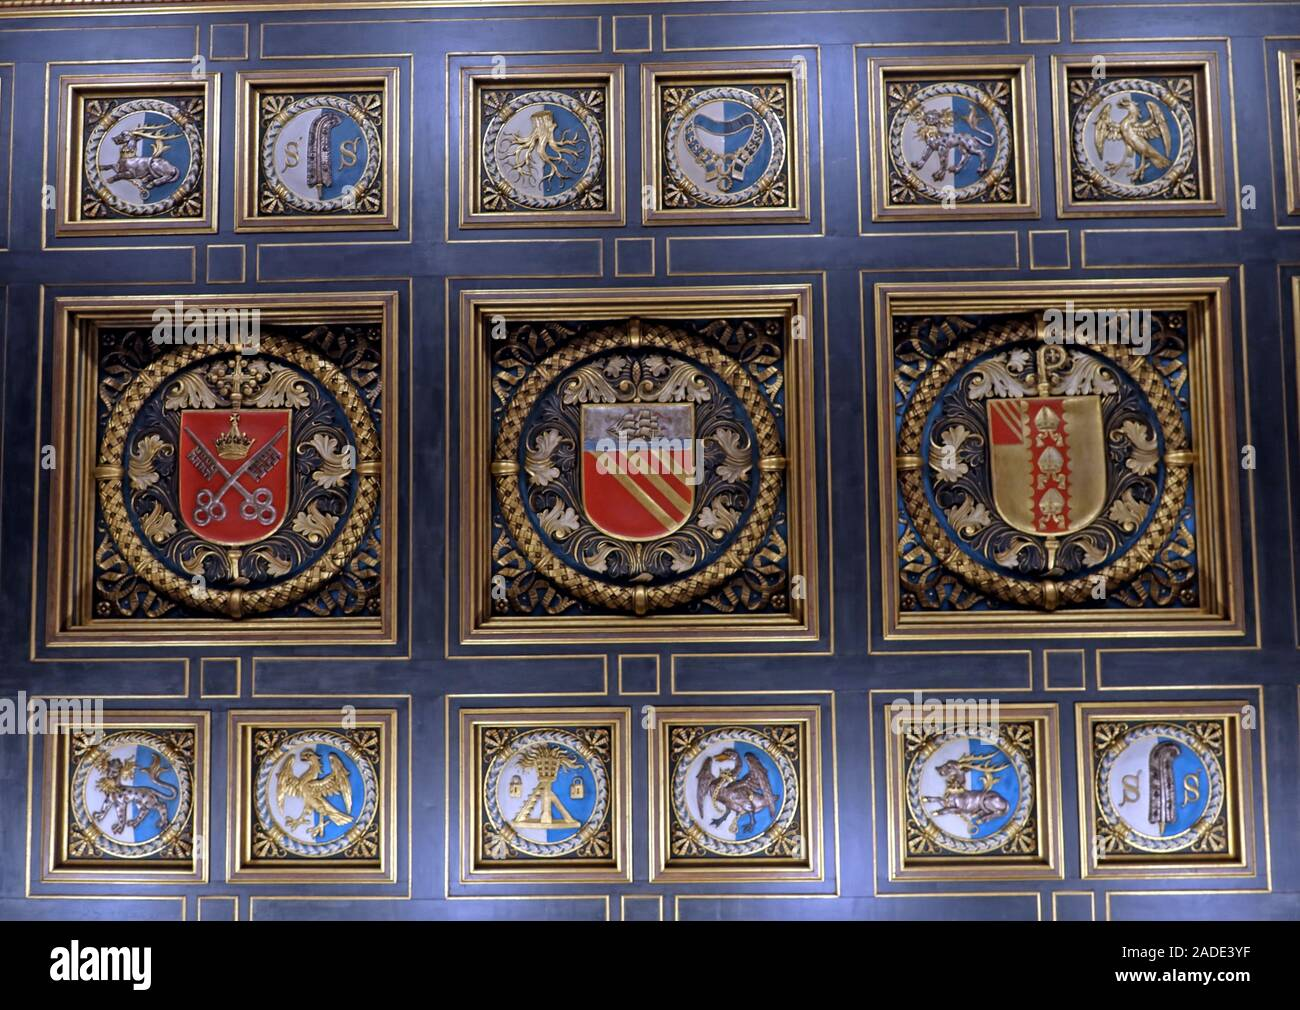 Manchester Central Library - City crest from entrance ceiling,arms and crests of the Duchy of Lancaster, the See of York, the See of Manchester Stock Photo